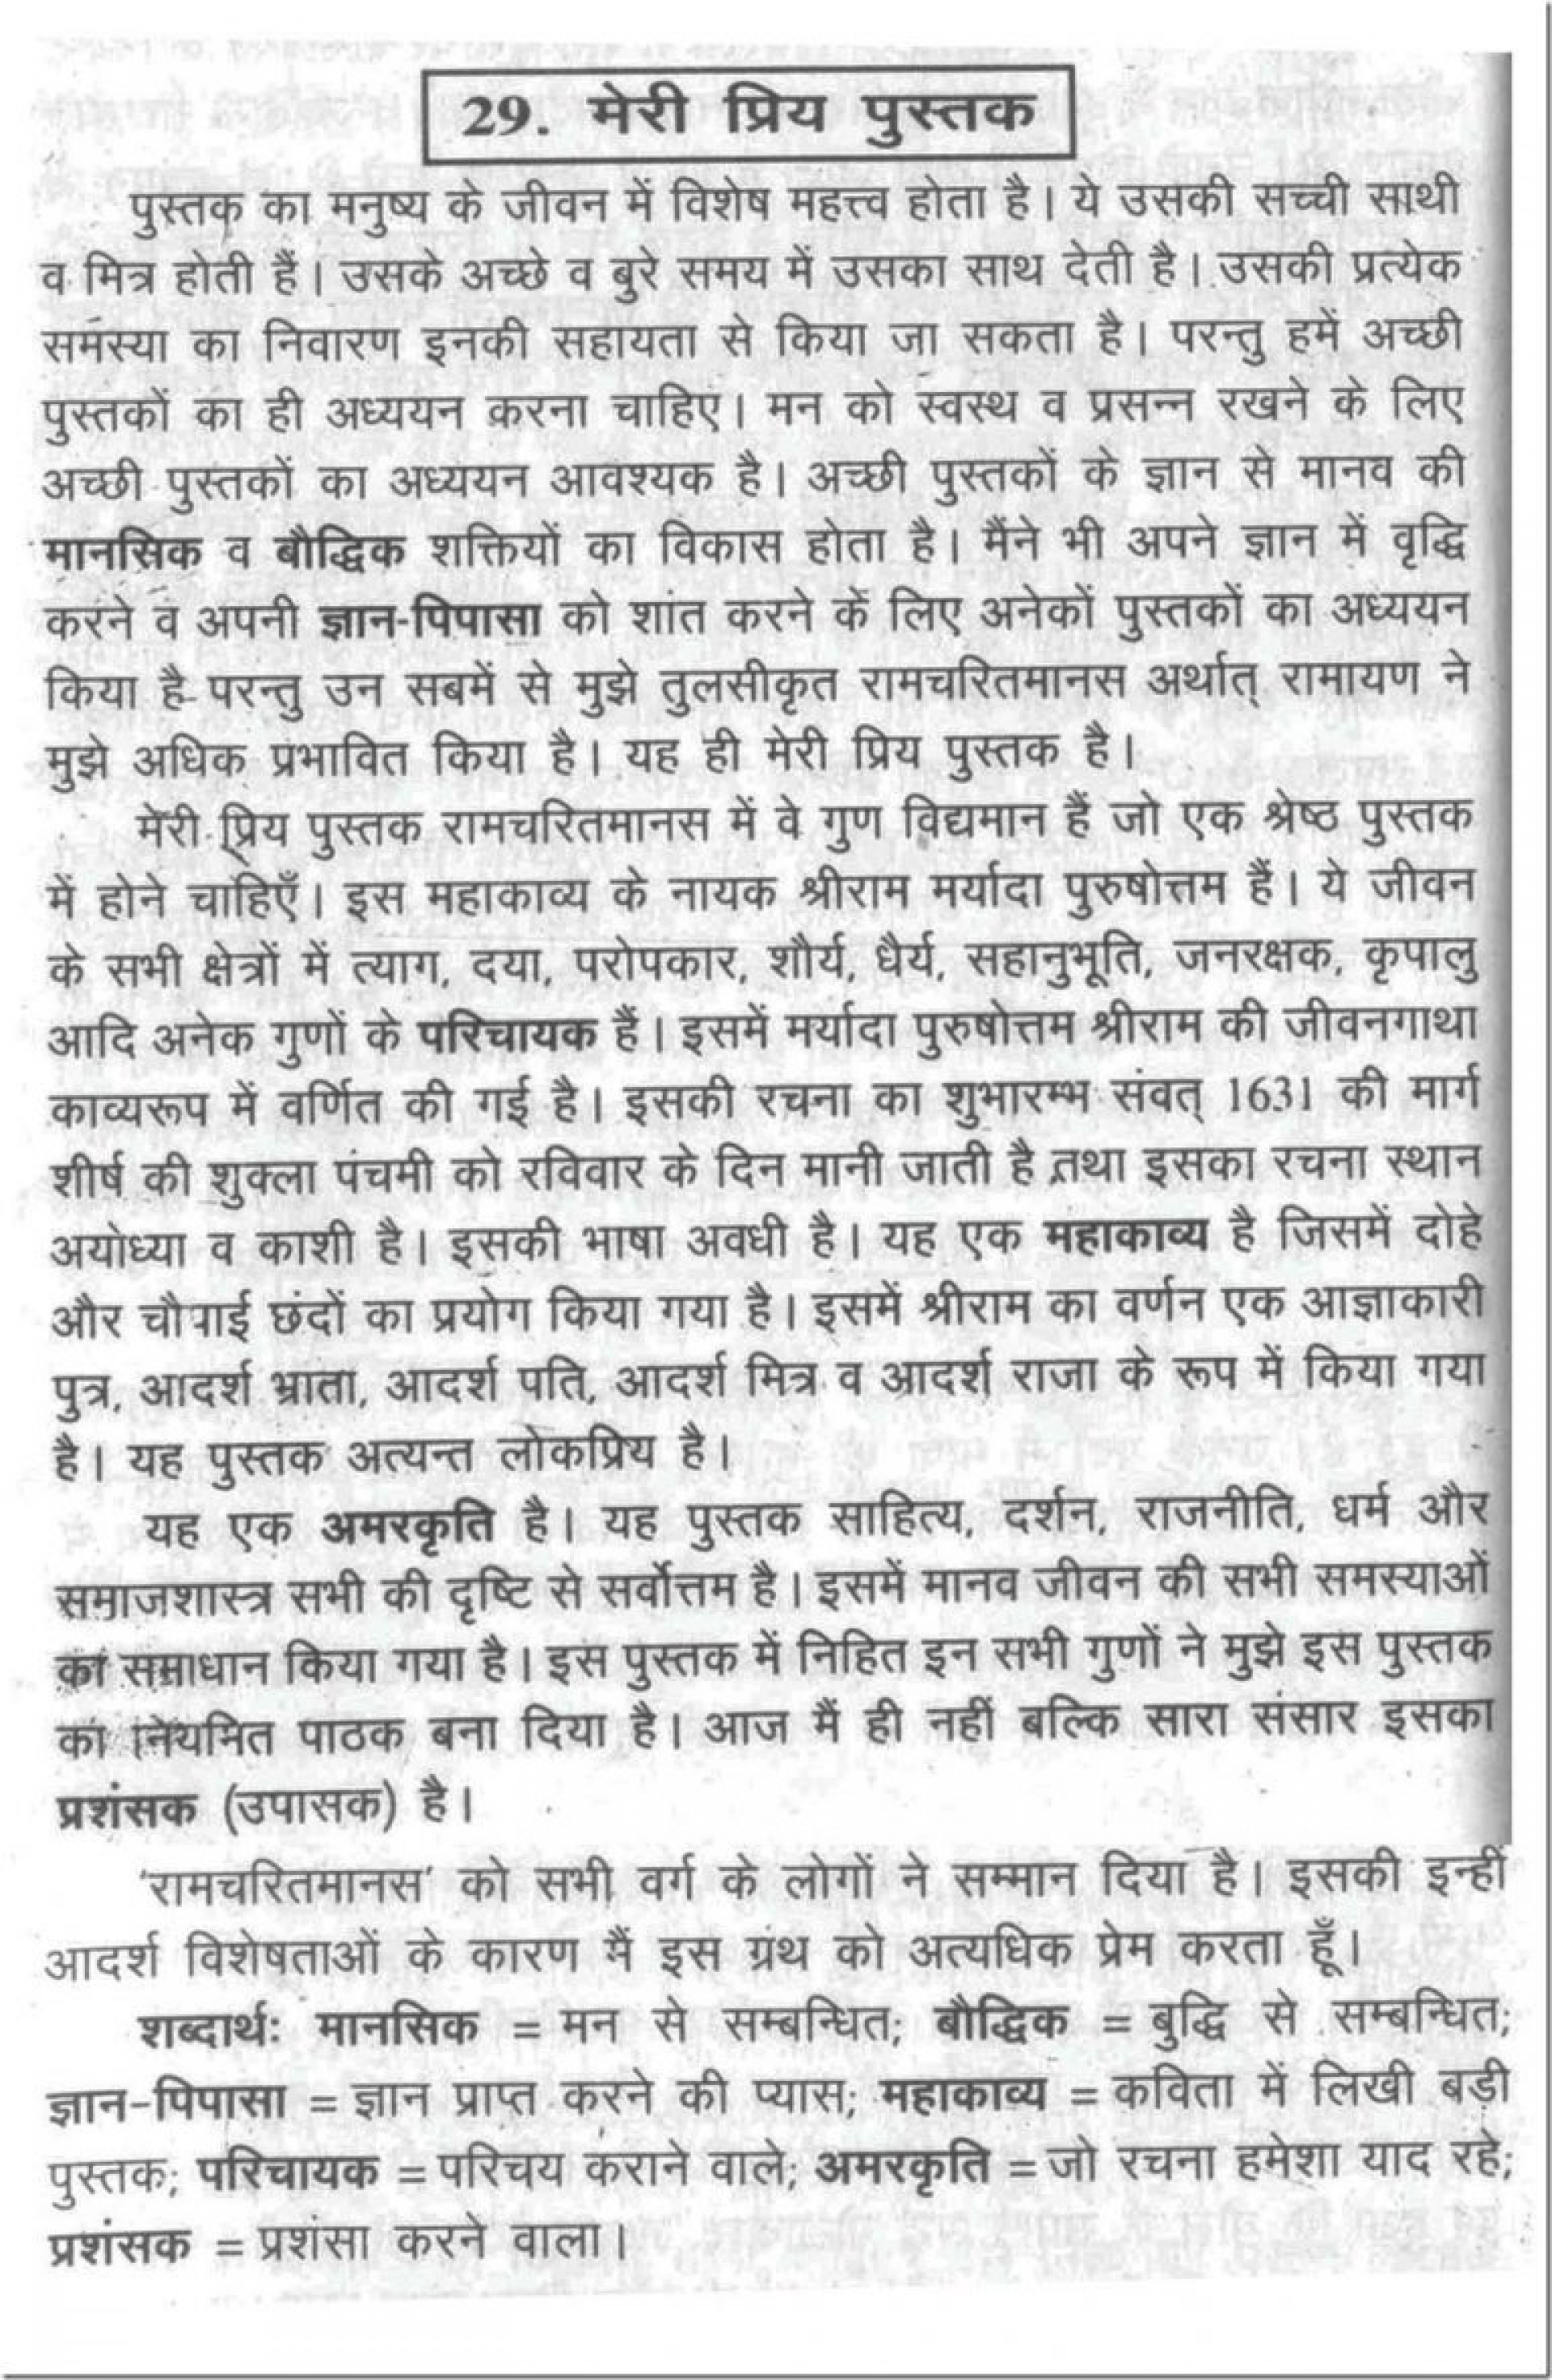 016 Research Paper Bunch Ideas Of Thesis Proposal Format Example Annotated Bibliography Apa Citation Awesome Essay On Books Are Our Best Friends In Hindi Phenomenal How To Write A 10 Page One Night 1920